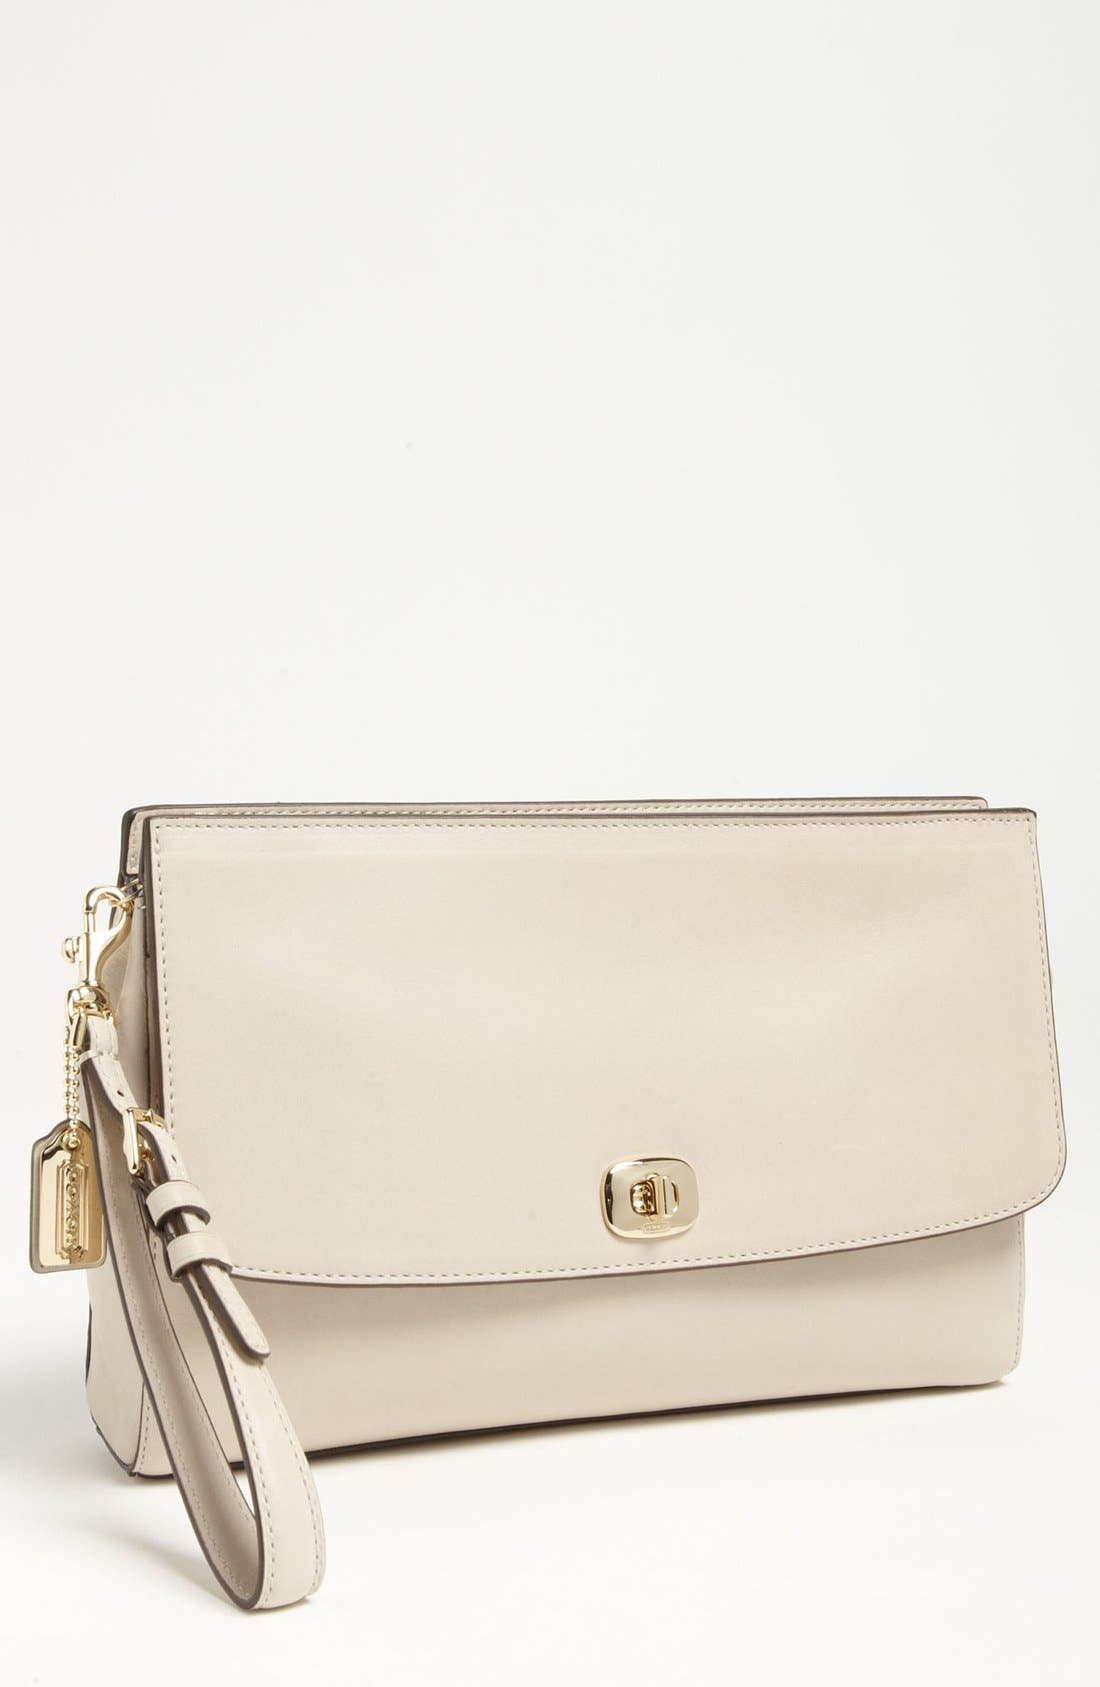 Alternate Image 1 Selected - COACH 'Legacy - Pinnacle' Leather Clutch